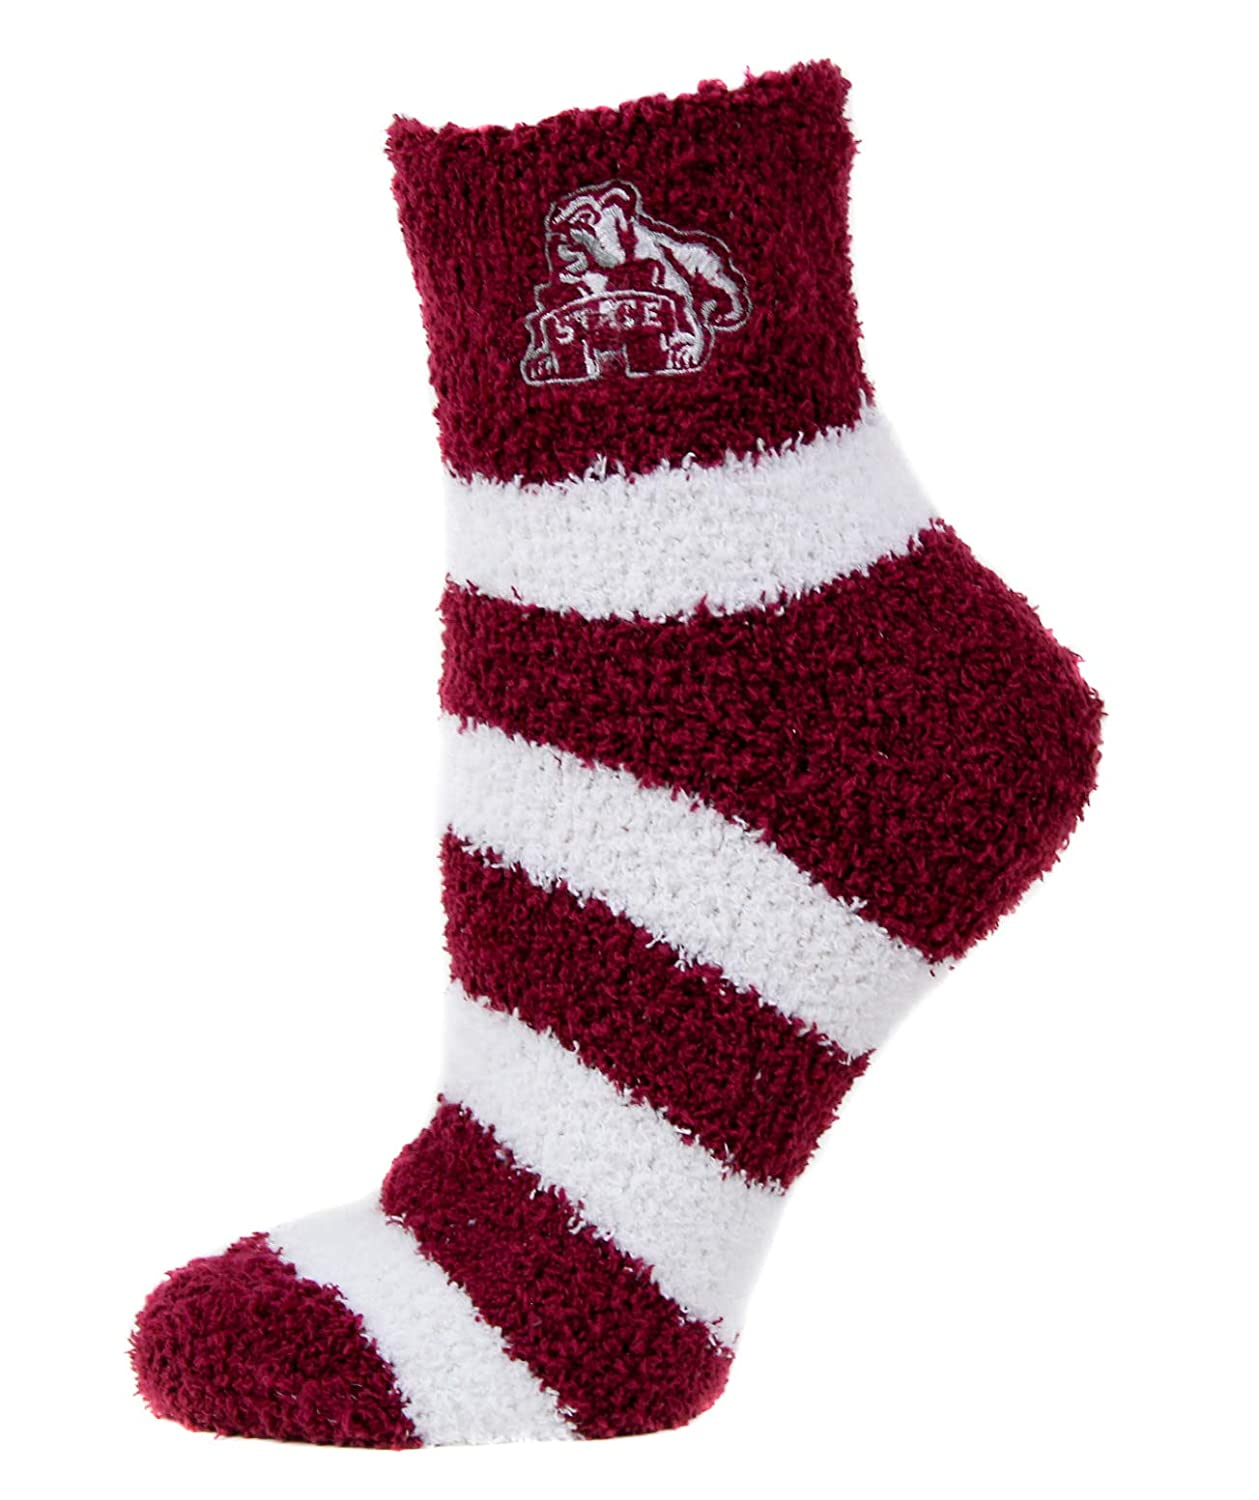 One Size Donegal Bay NCAA Mississippi State Bulldogs Unisex Mississippi State Bulldogs Striped Fuzzy SockMississippi State Bulldogs Striped Fuzzy Sock Maroon//Black